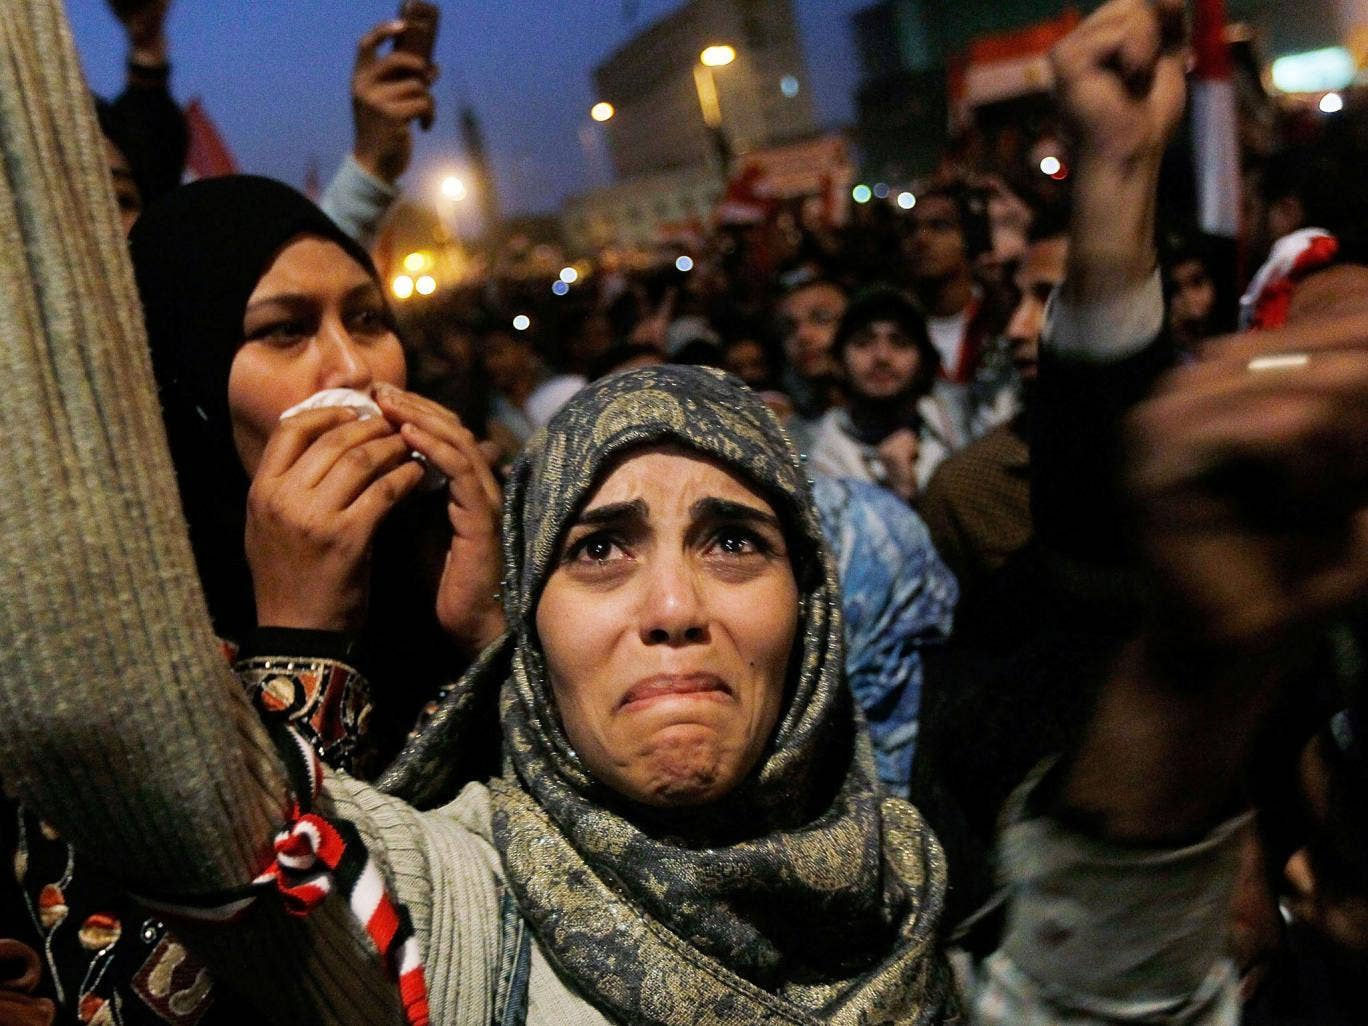 A UN survey reported that more than 99 per cent of women had experienced sexual harassment; there were 90 reports of harassment in Tahrir Square alone during the four days before Mohamed Morsi was deposed